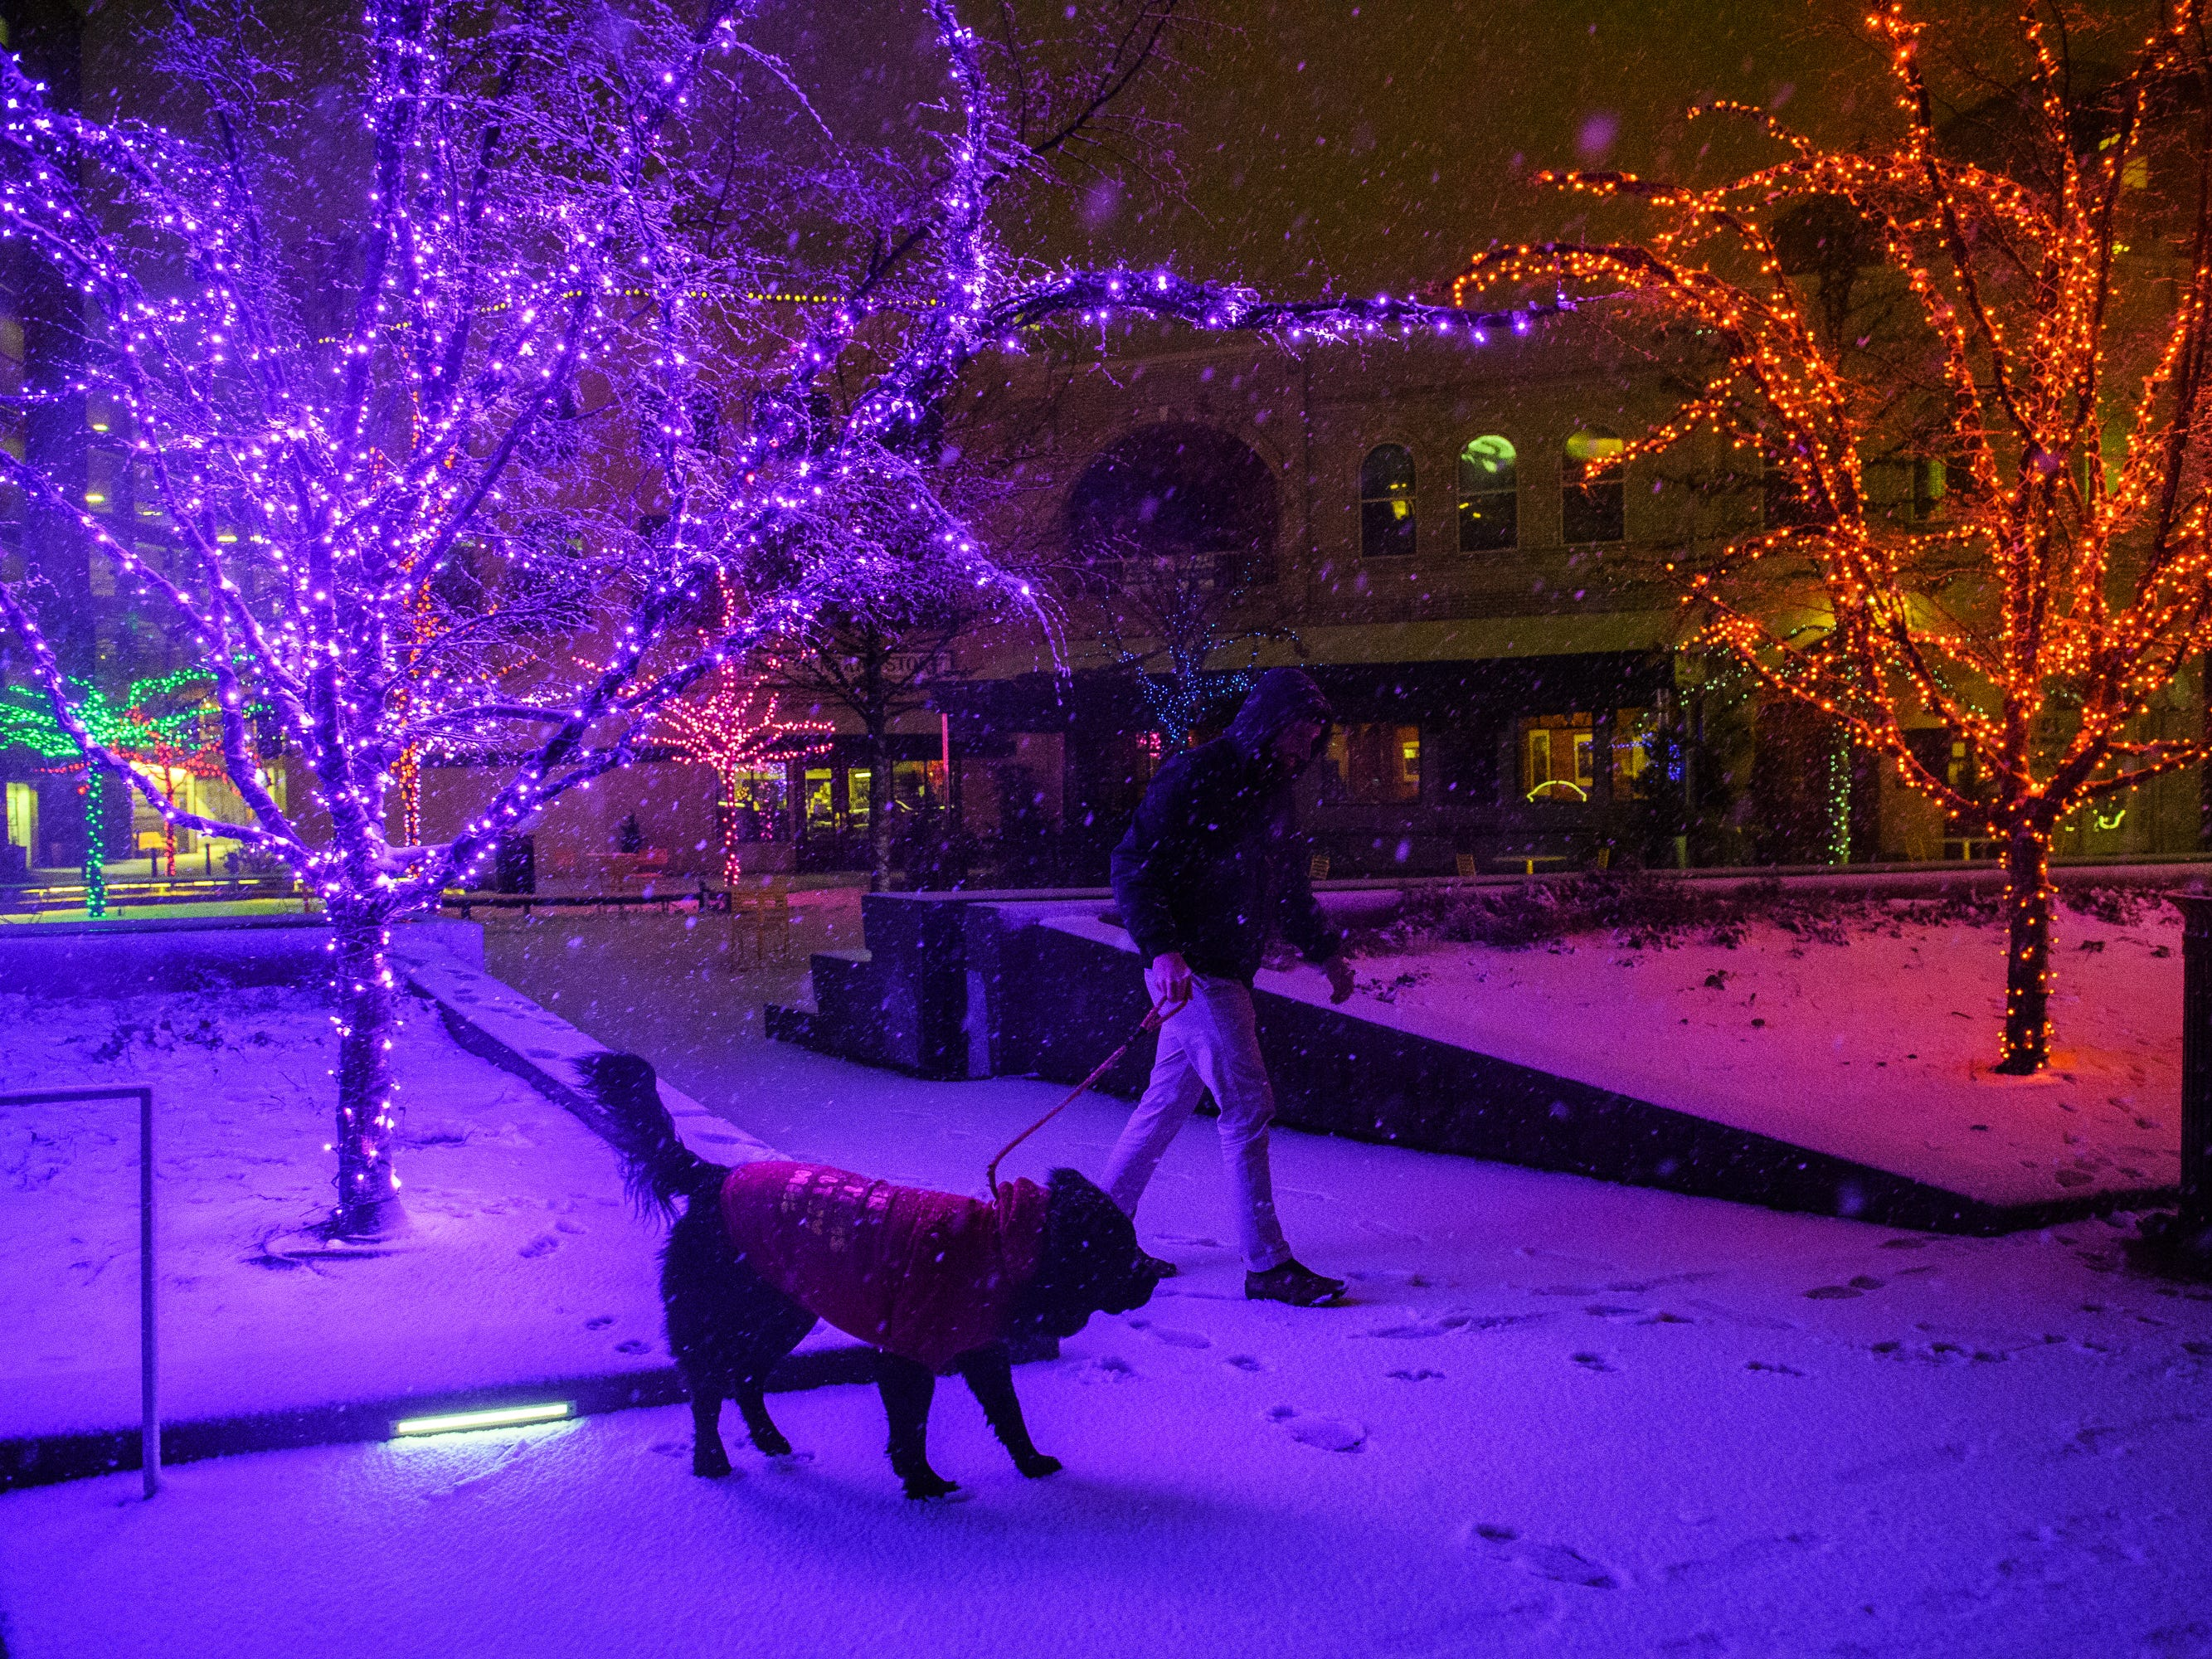 Alex Hunter walks his dog Monty in downtown Greenville as snow begins to fall on Sunday, Dec. 9, 2018.